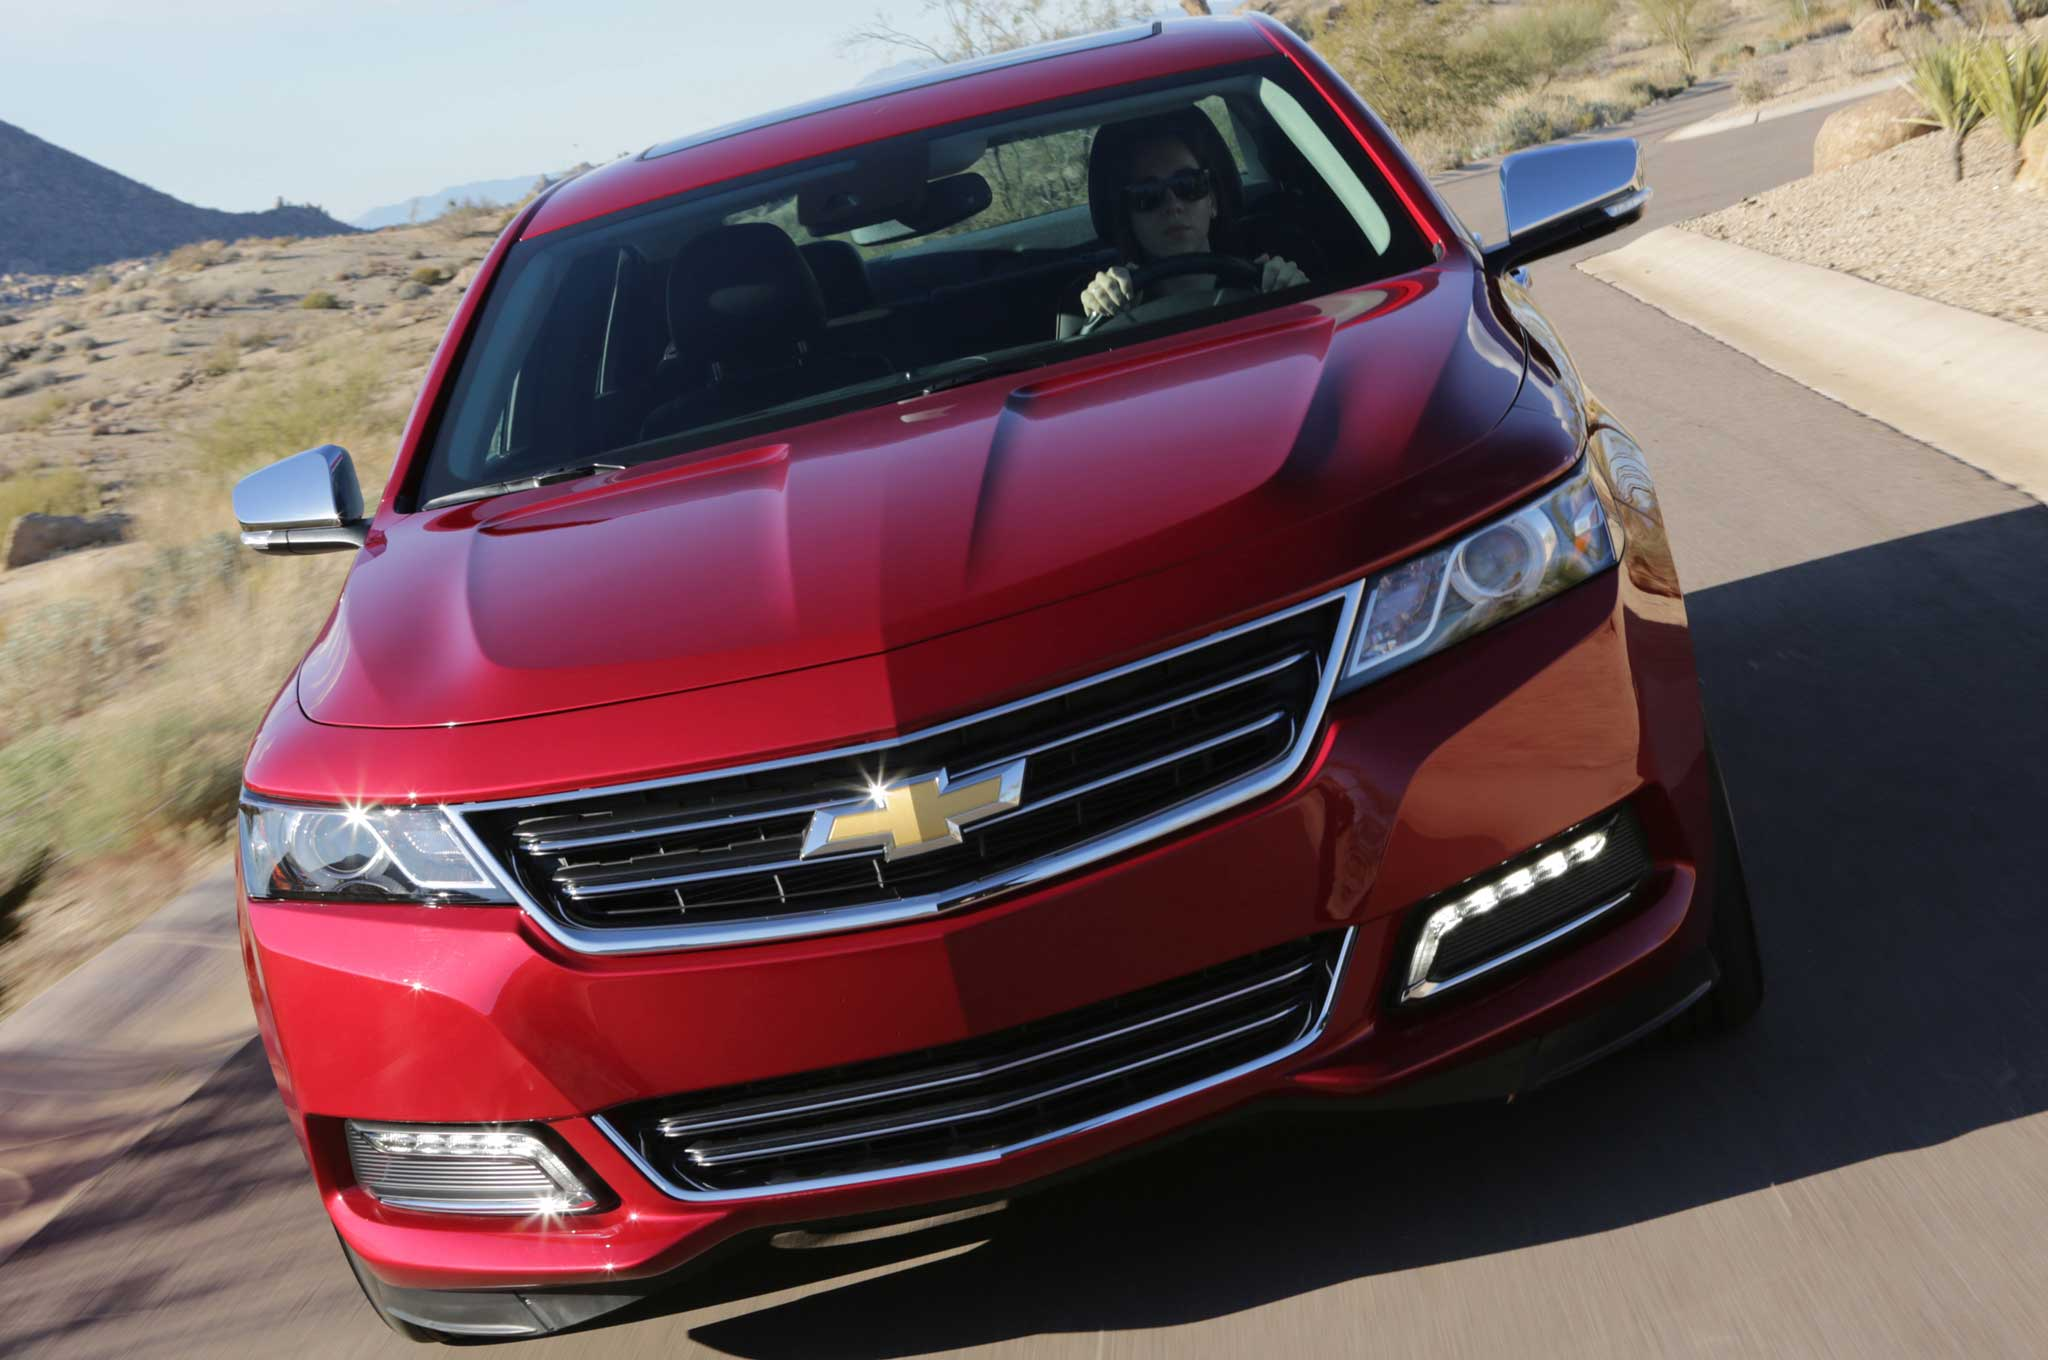 2014 gmcs chevys buicks to get complimentary maintenance plan zach gale publicscrutiny Images